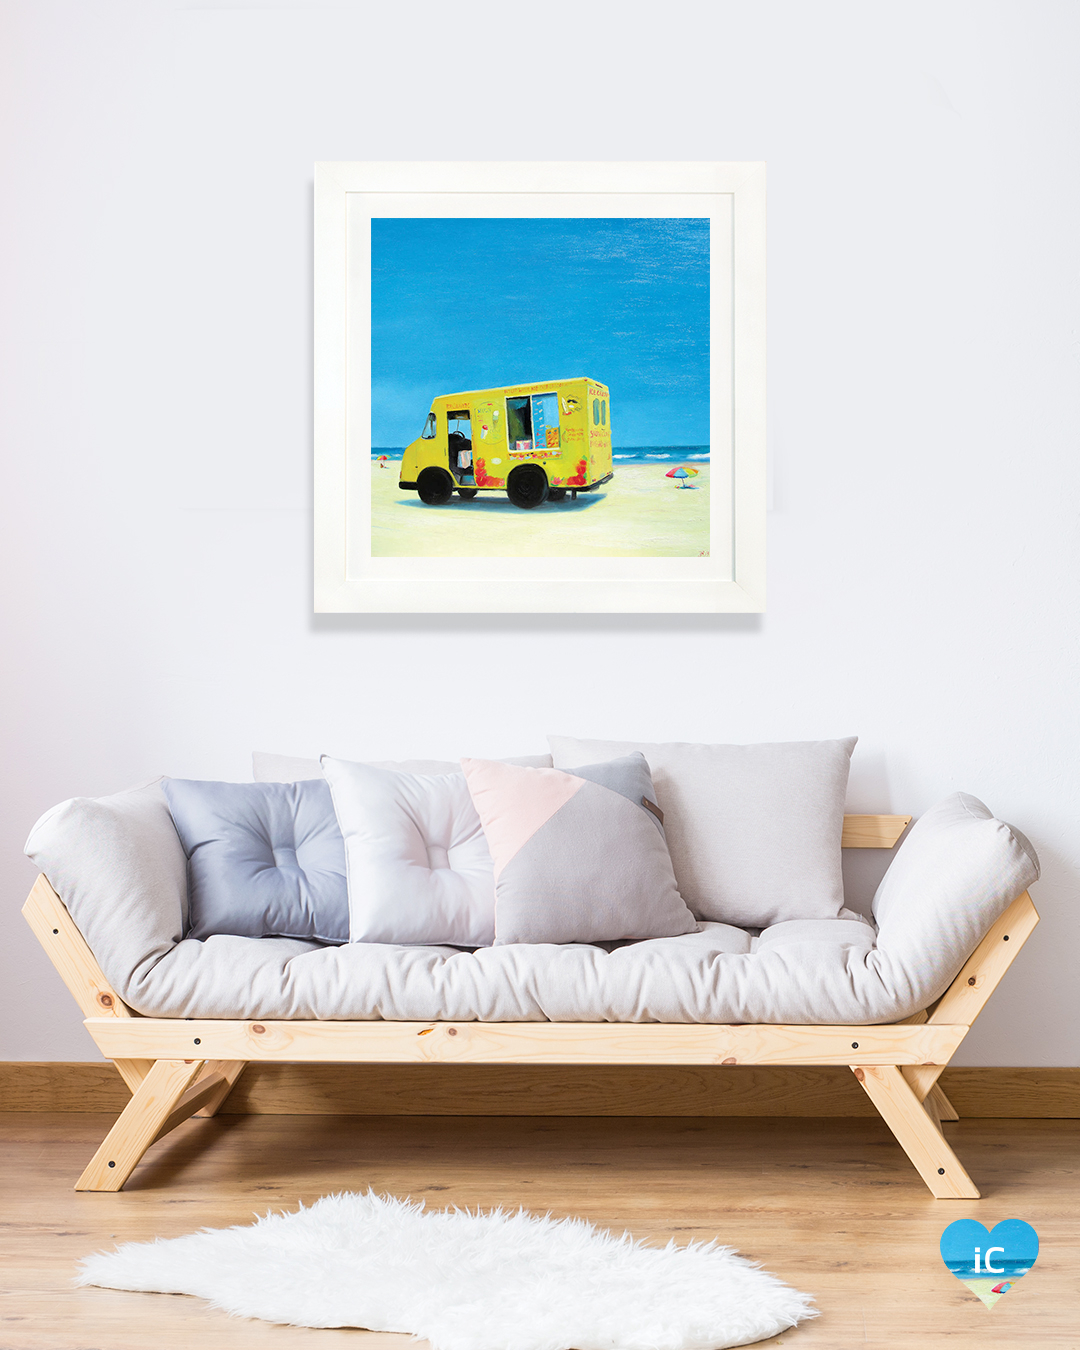 yellow ice cream truck parked on beach with water in view